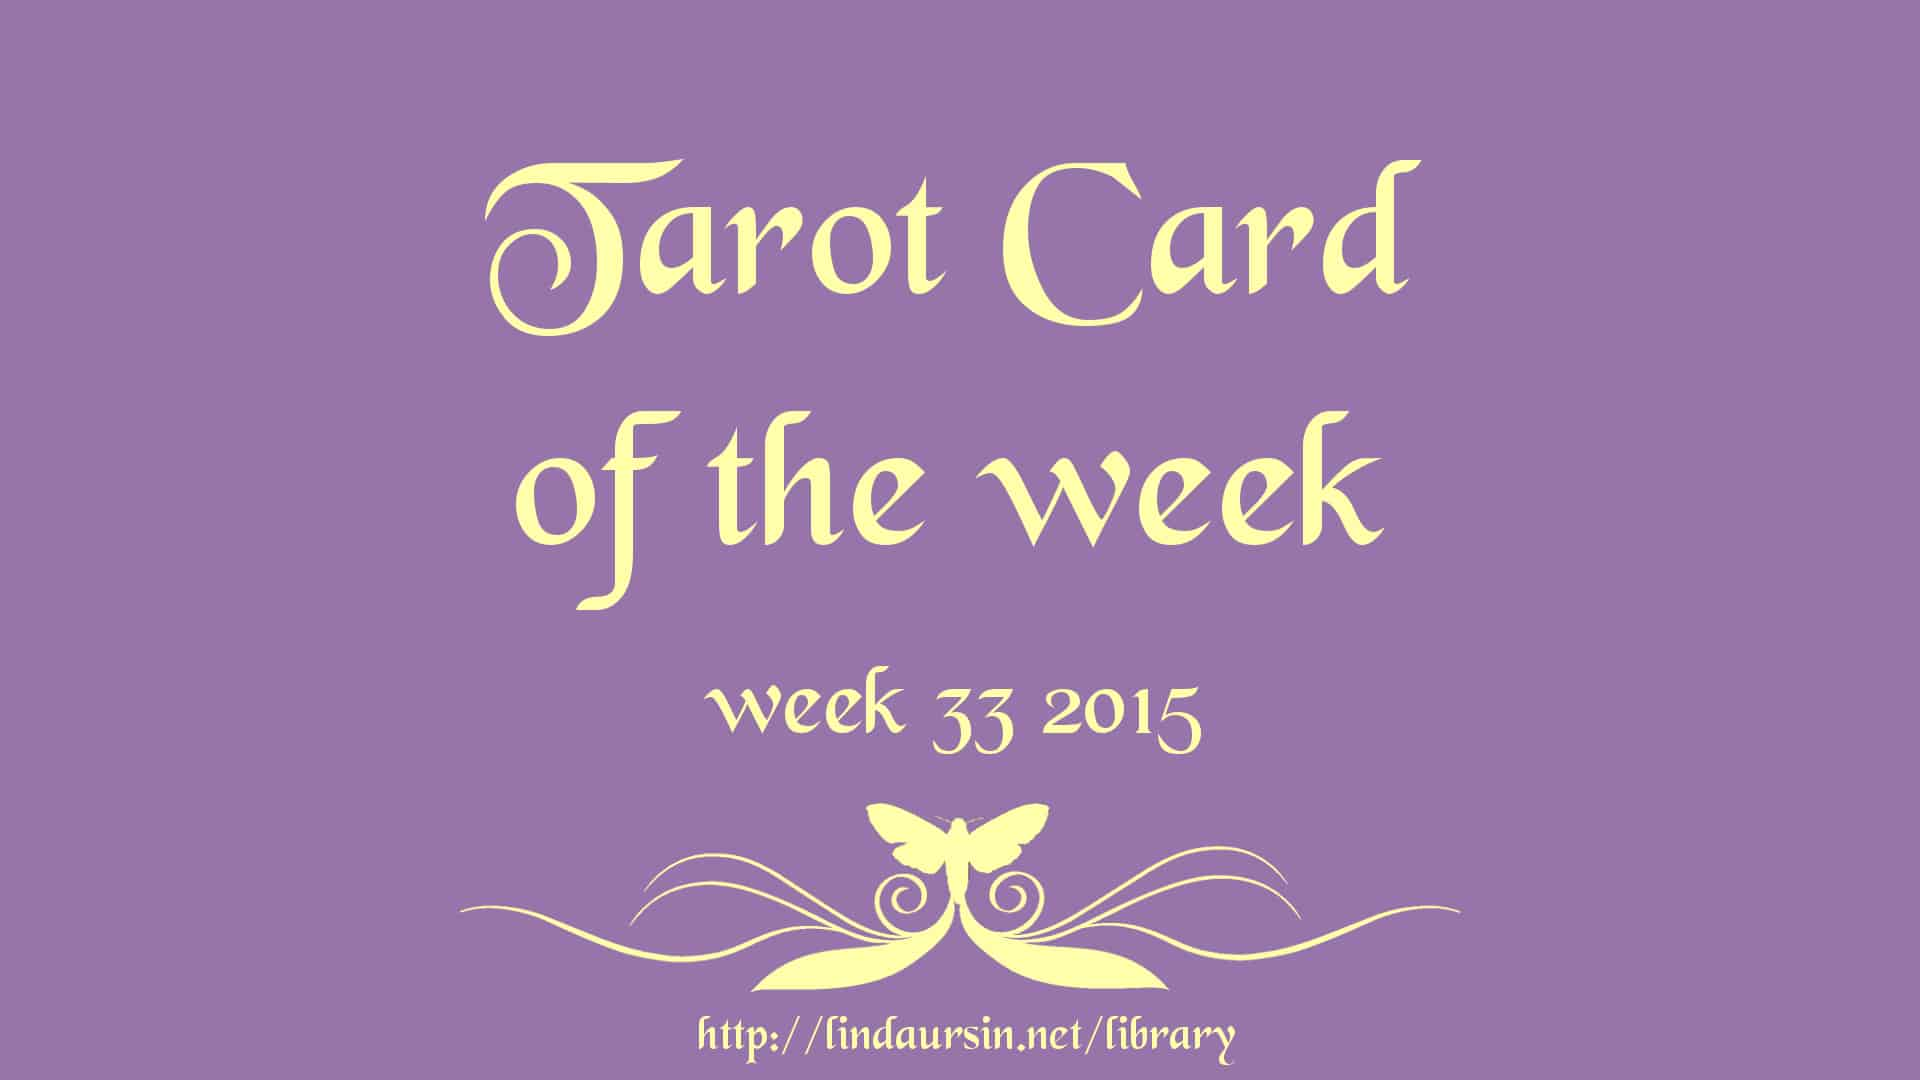 Your weekly Tarot card, week 33